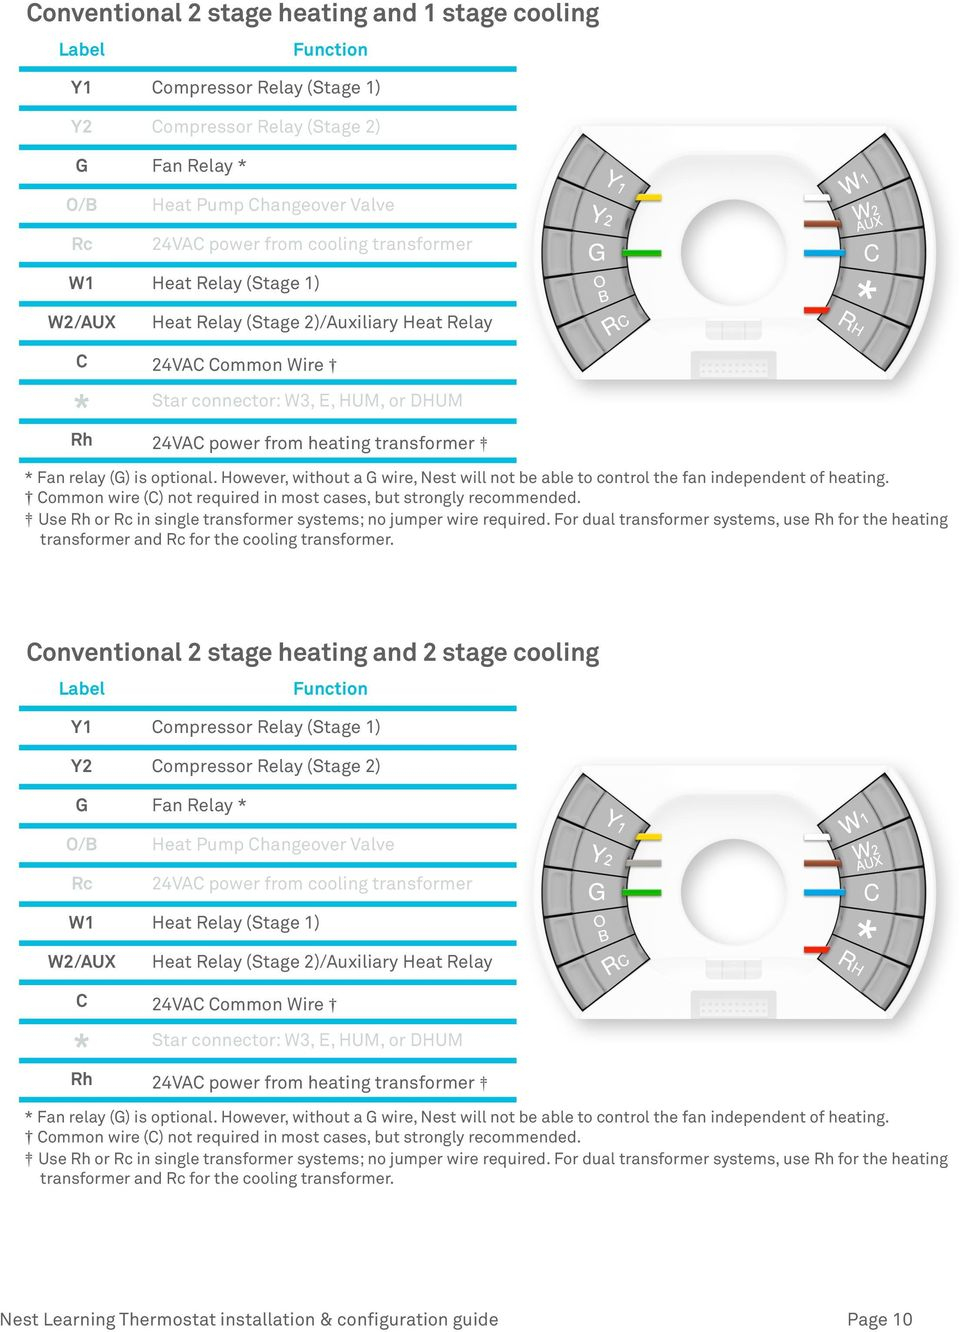 Nest Learning Thermostat Pro Installation & Configuration Guide - Pdf - Nest Wiring Diagram Aux Heat